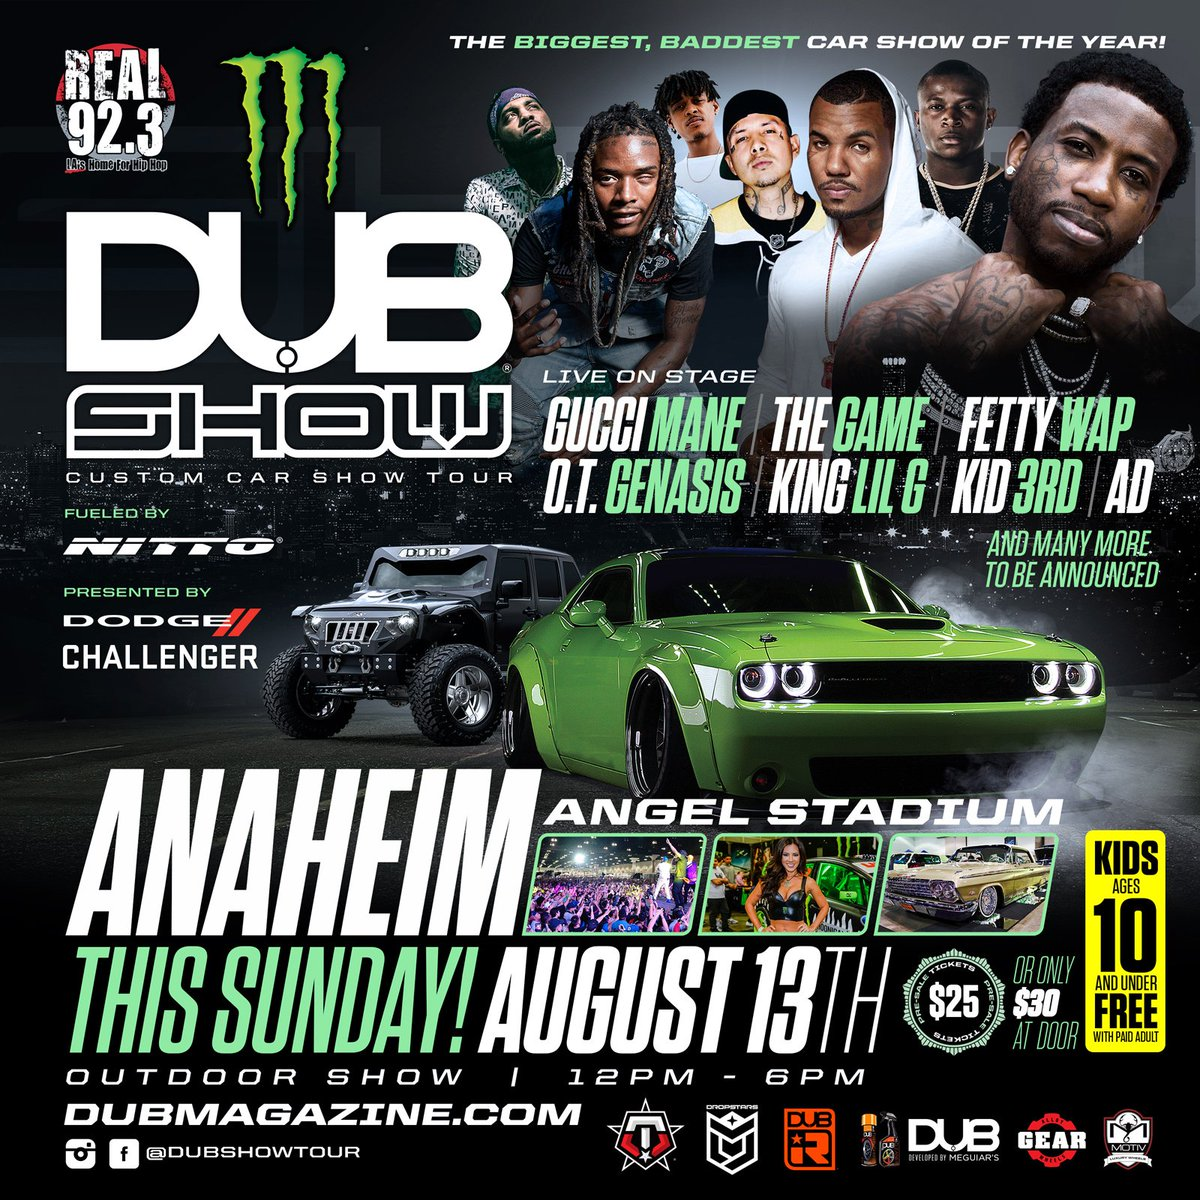 TIS Wheels On Twitter THIS SUNDAY At Angel Stadium In Anaheim - Angel stadium car show